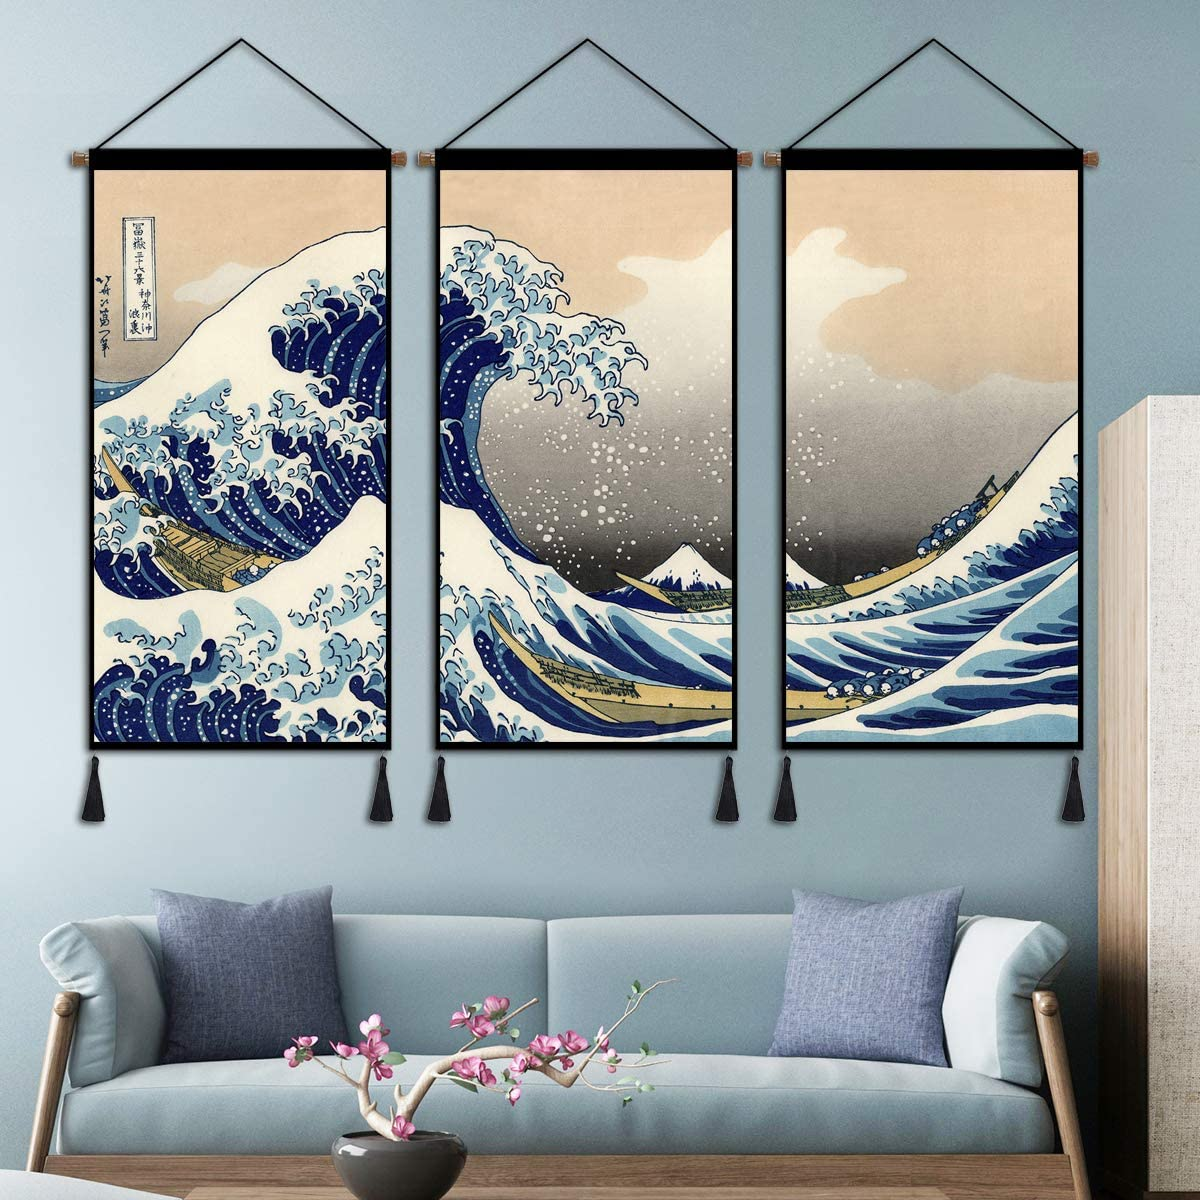 Hanging Poster Wall Art, Kanagawa Great Wave Tapestry Nature Artwork, 3 Panels Indoor Decor for Home Dorm Office with Hanging Kit 18x36 Inch